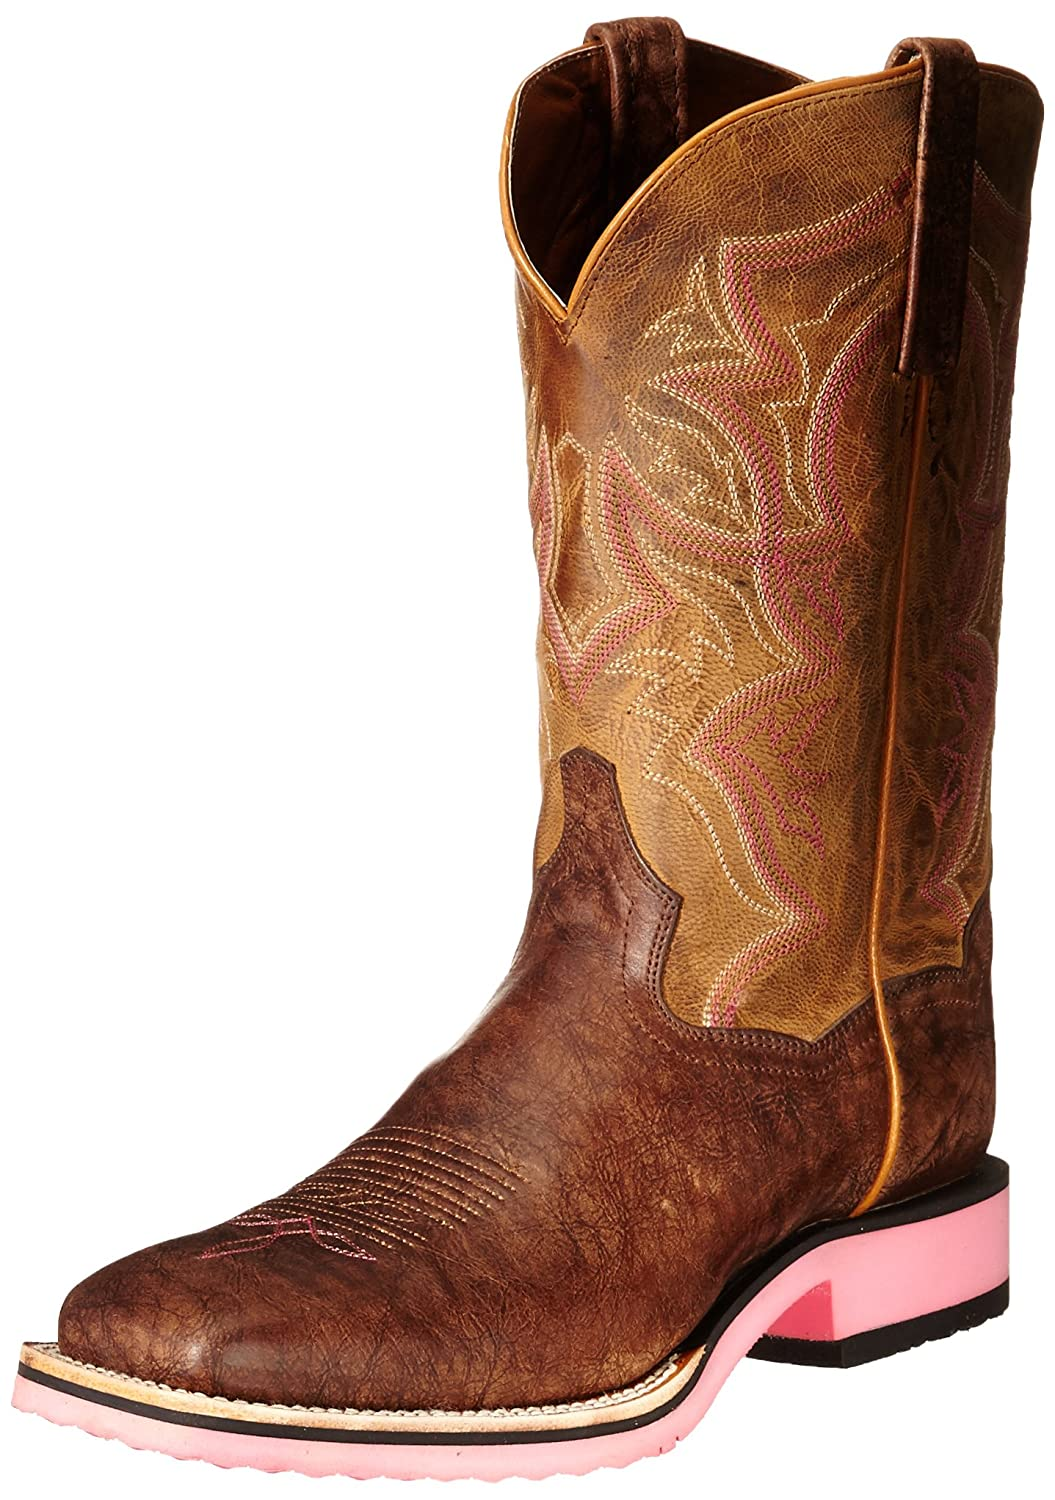 Dan Post Women's Serrano Western Boot B00QSPOIZO 10 B(M) US|Tan/Bay Apache